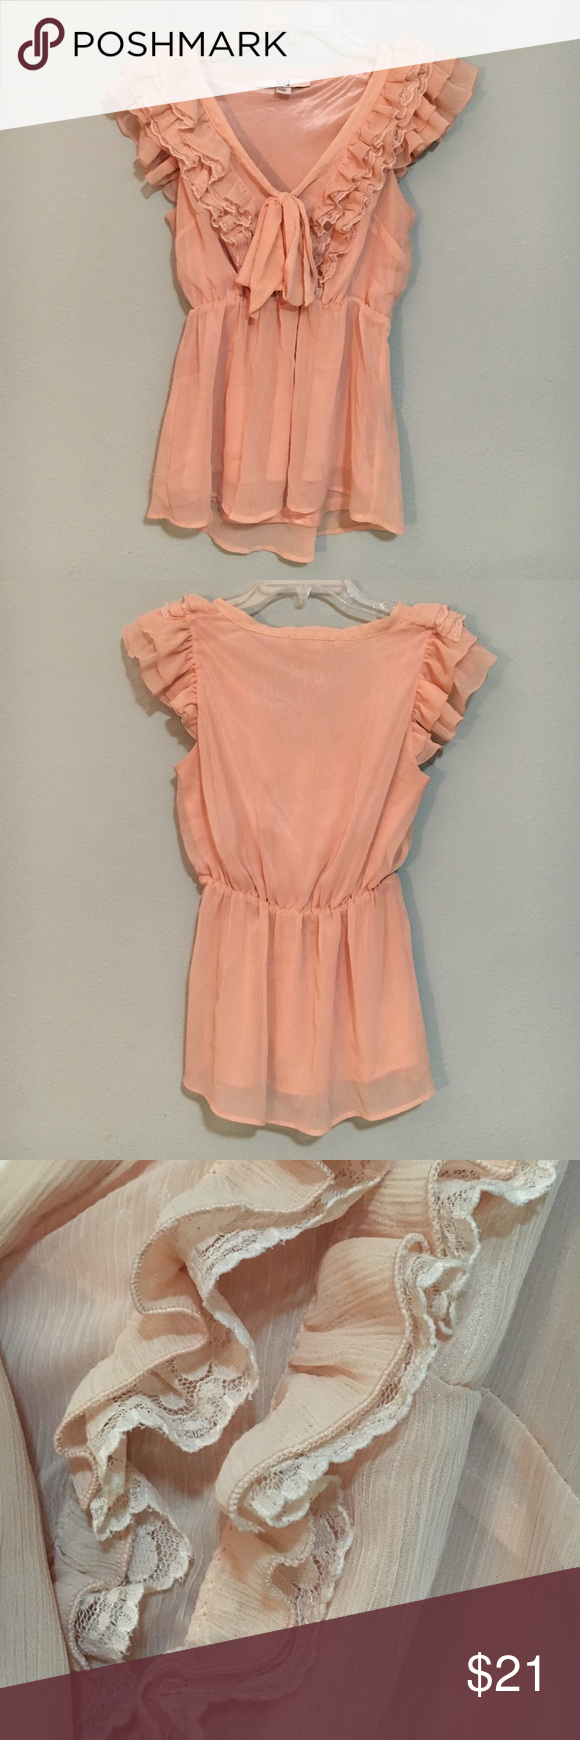 F21 ruffle blouse Romantic blouse with bow and ruffle lace details. Cinched waist, v-neck. Forever 21 Tops Blouses